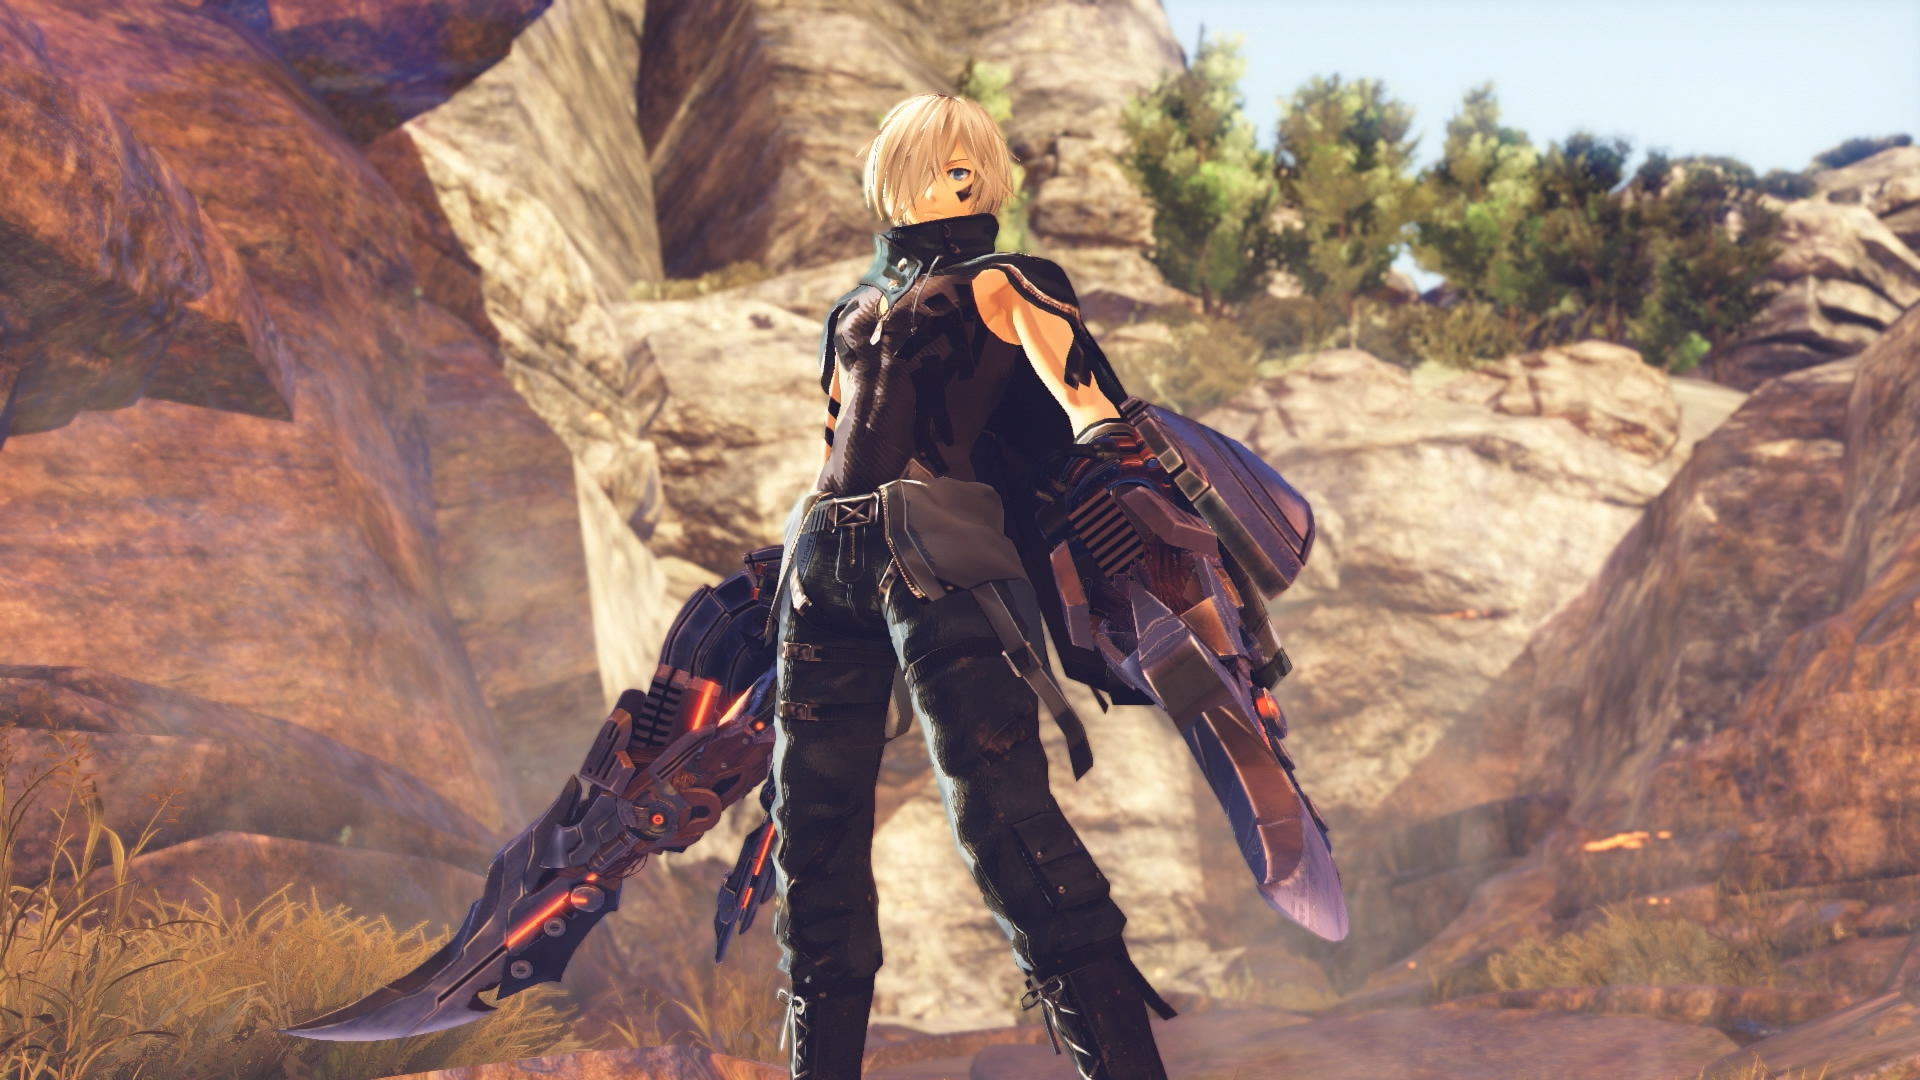 Godeater33